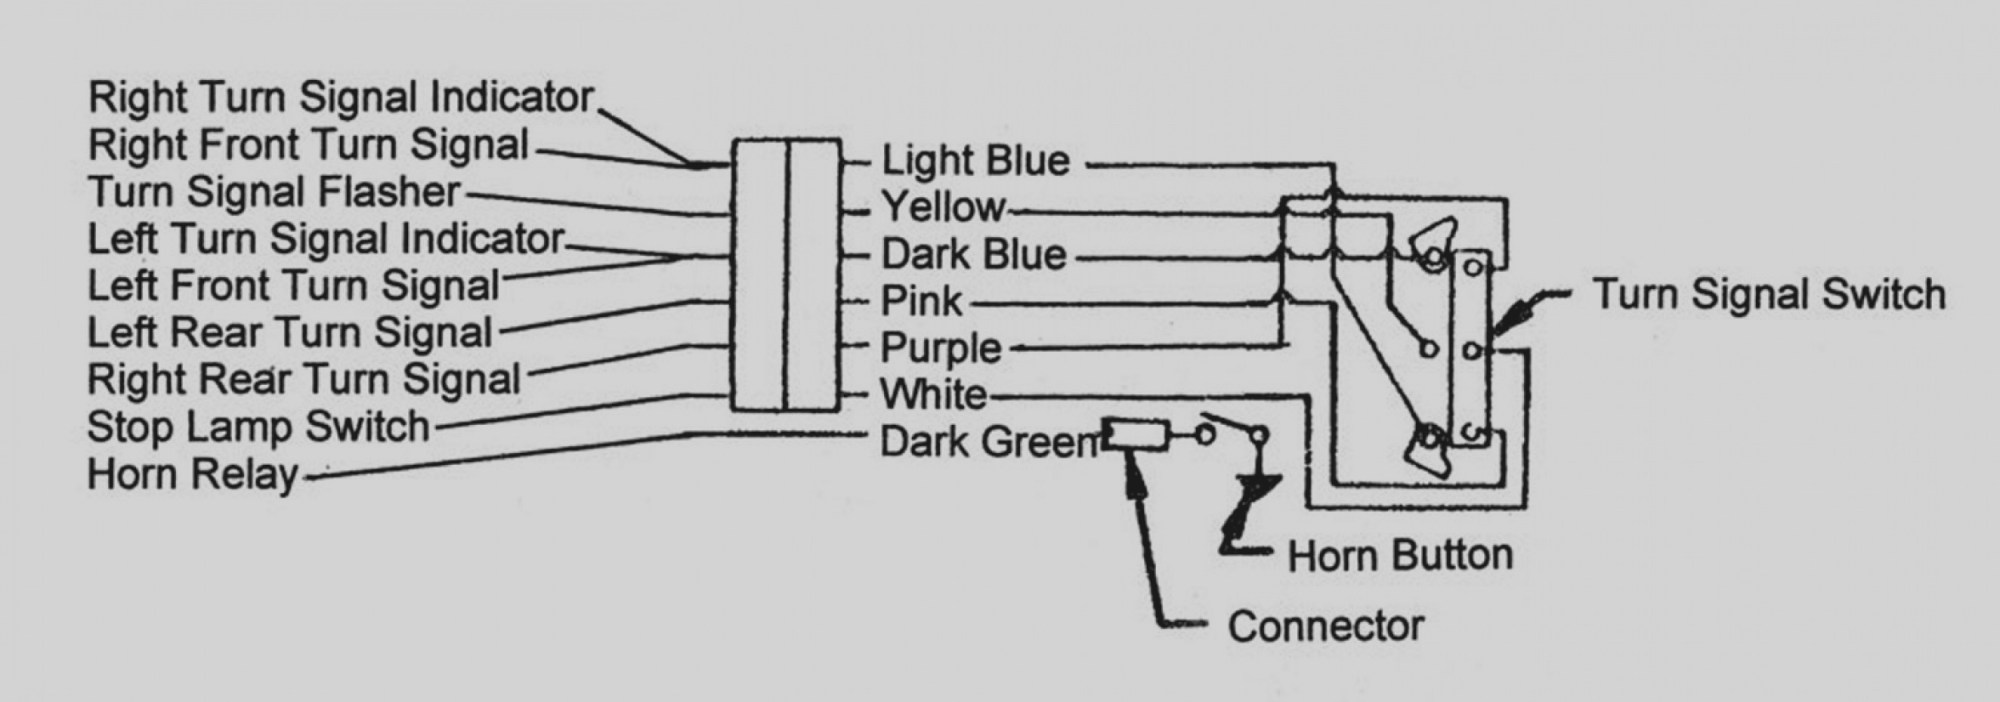 hight resolution of turn signal wiring harness diagram wiring diagram review 1982 camaro turn signal wiring diagram